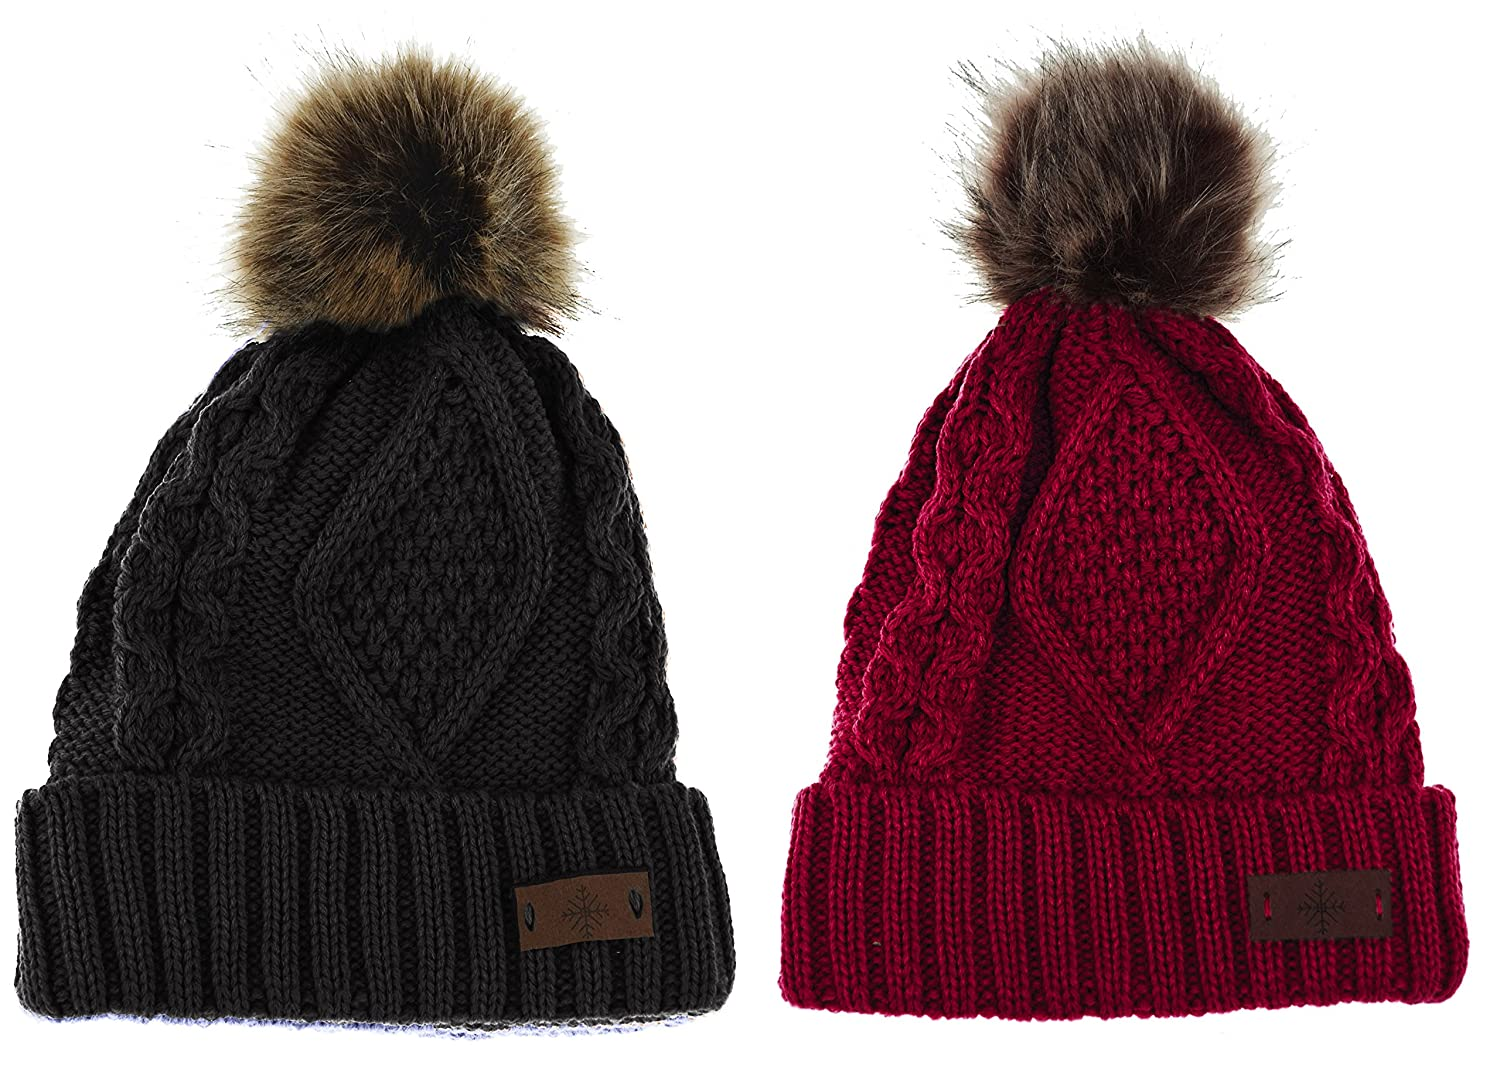 515ba3eb904 Women s Faux Fur Pom Pom Fleece Lined Knitted Slouchy Beanie Hat (2-Pack  Black) at Amazon Women s Clothing store